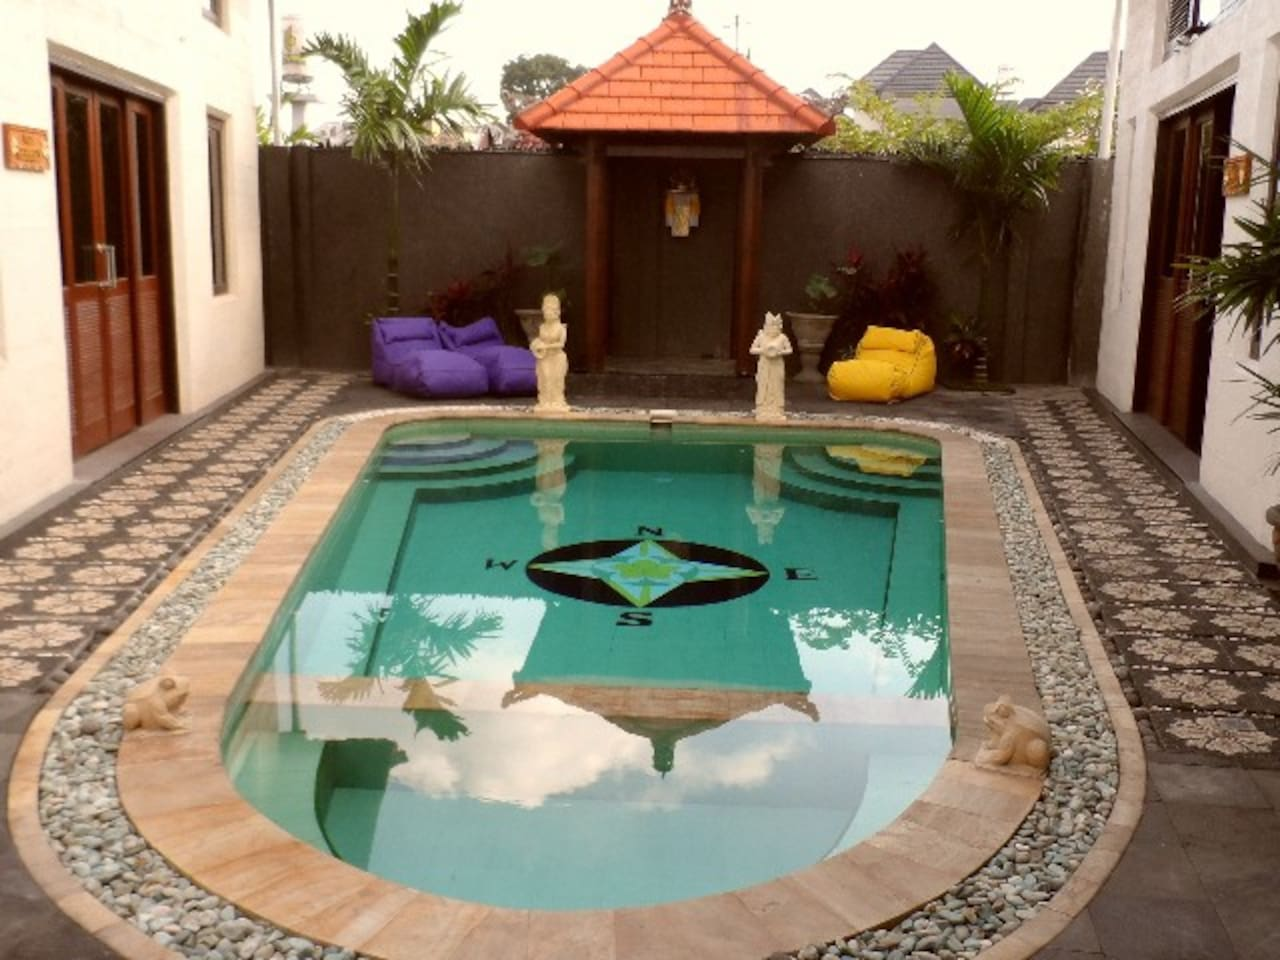 the main feature HUGE plunge pool